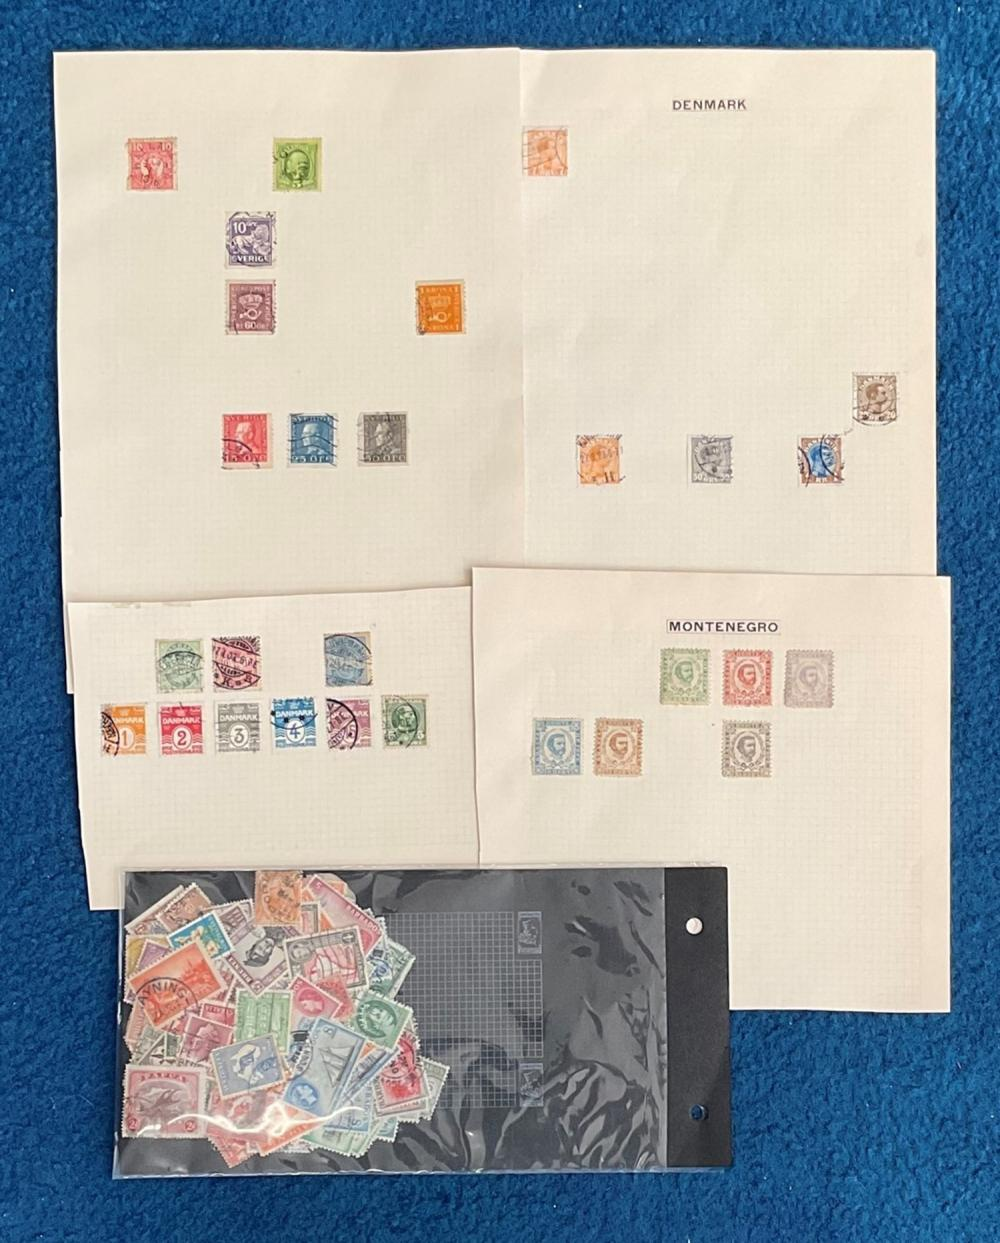 Assorted stamp collection on loose album pages. Includes Sweden, Denmark, Montenegro and more.